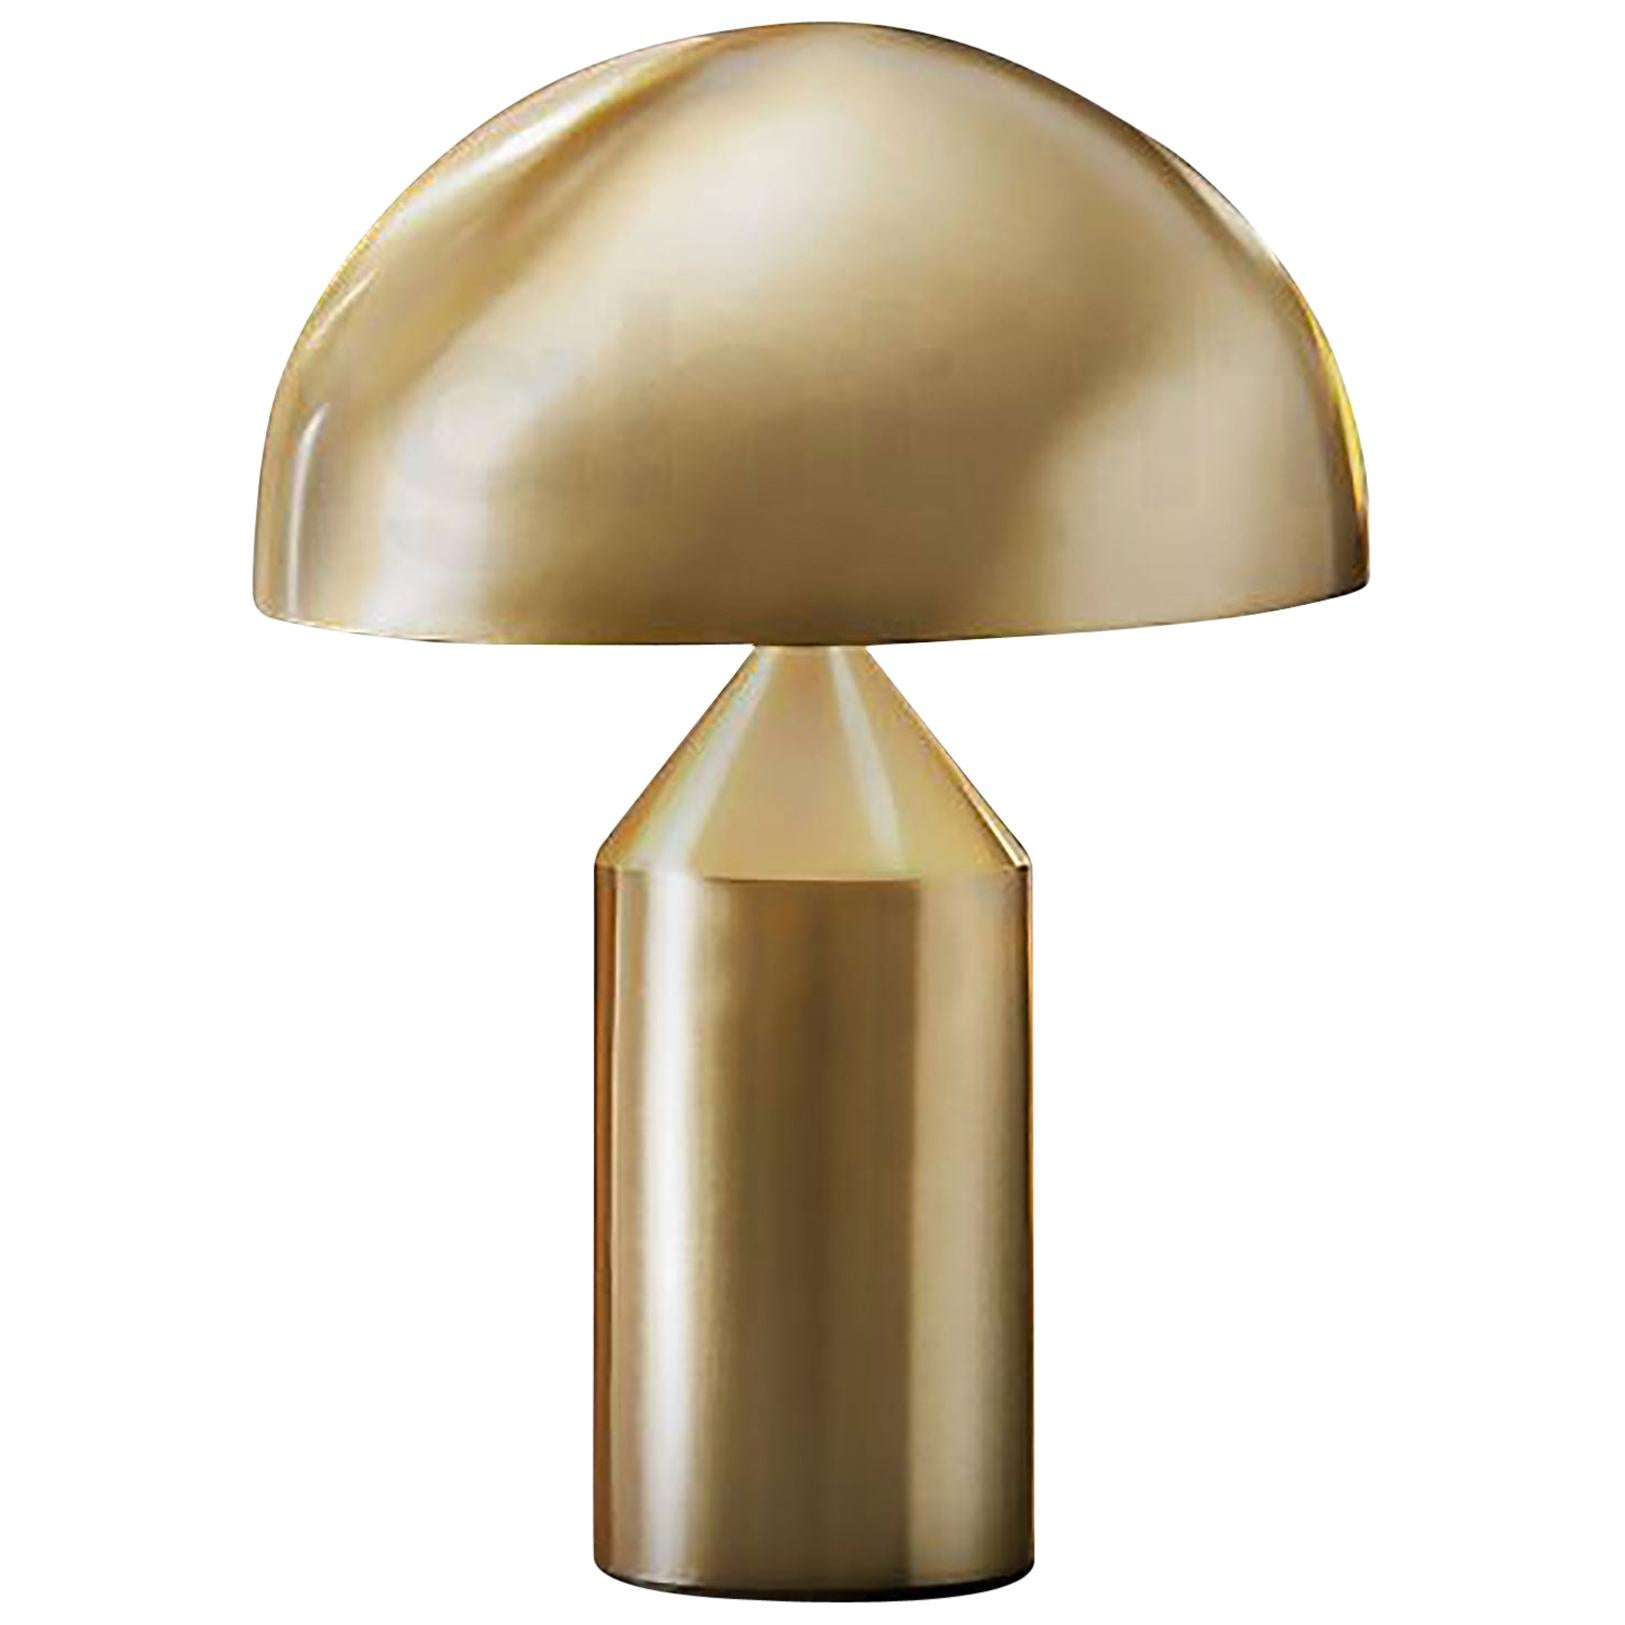 Atollo Metal Table Lamp by  Vico Magistretti for Oluce